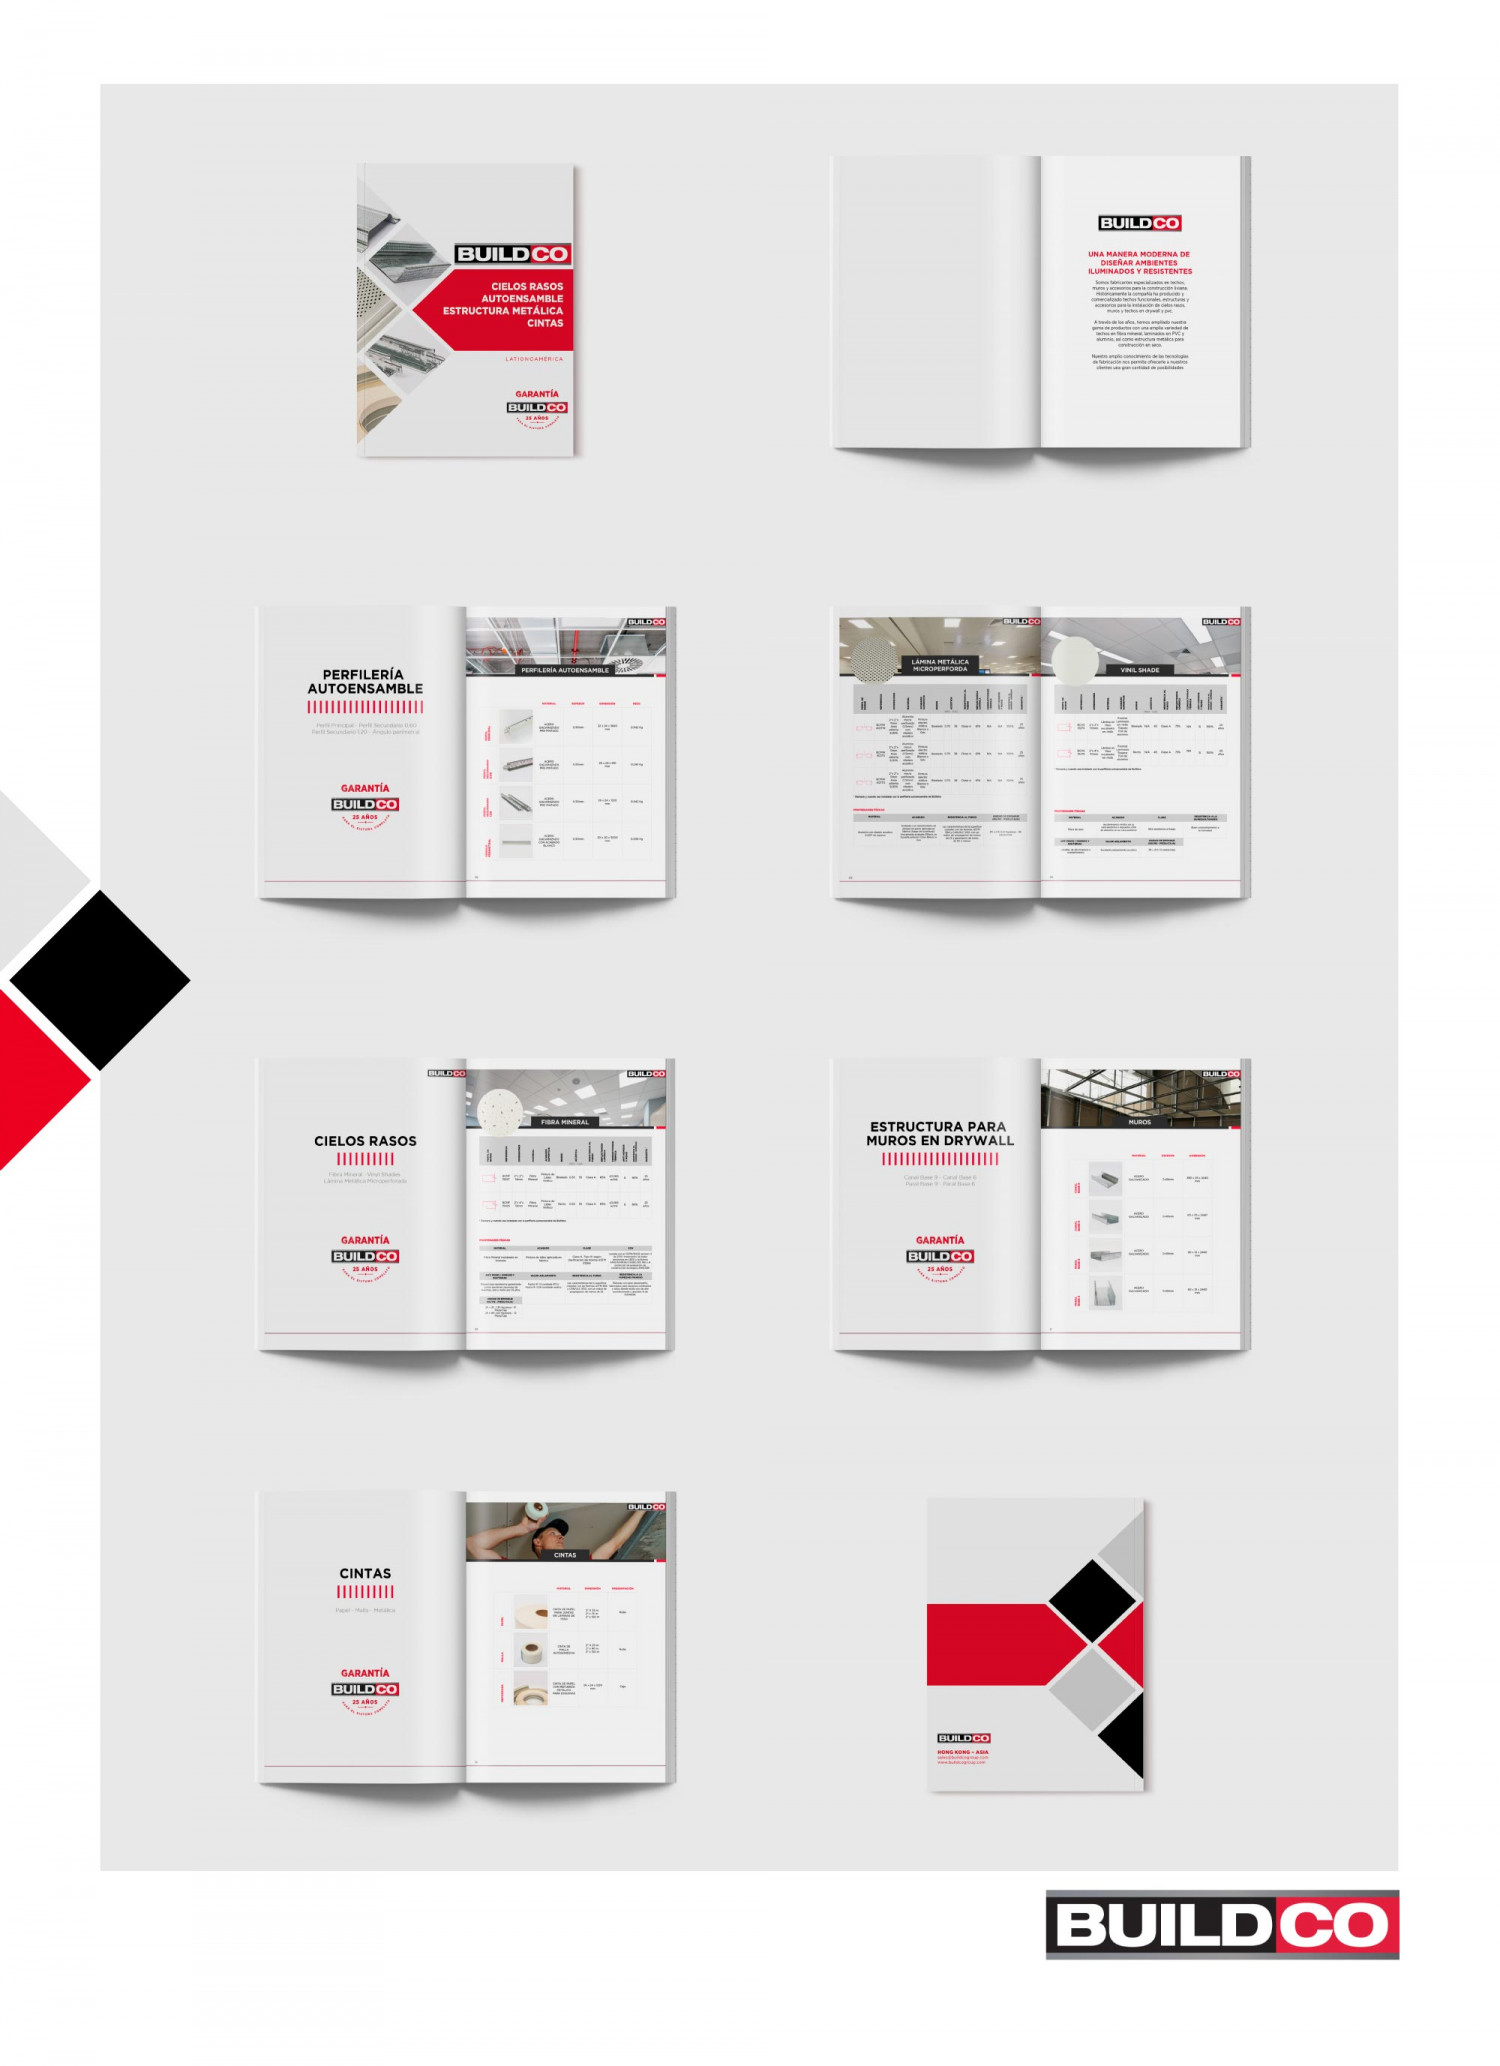 BuildCo Product Catalogue Design and Product Photography Infographic